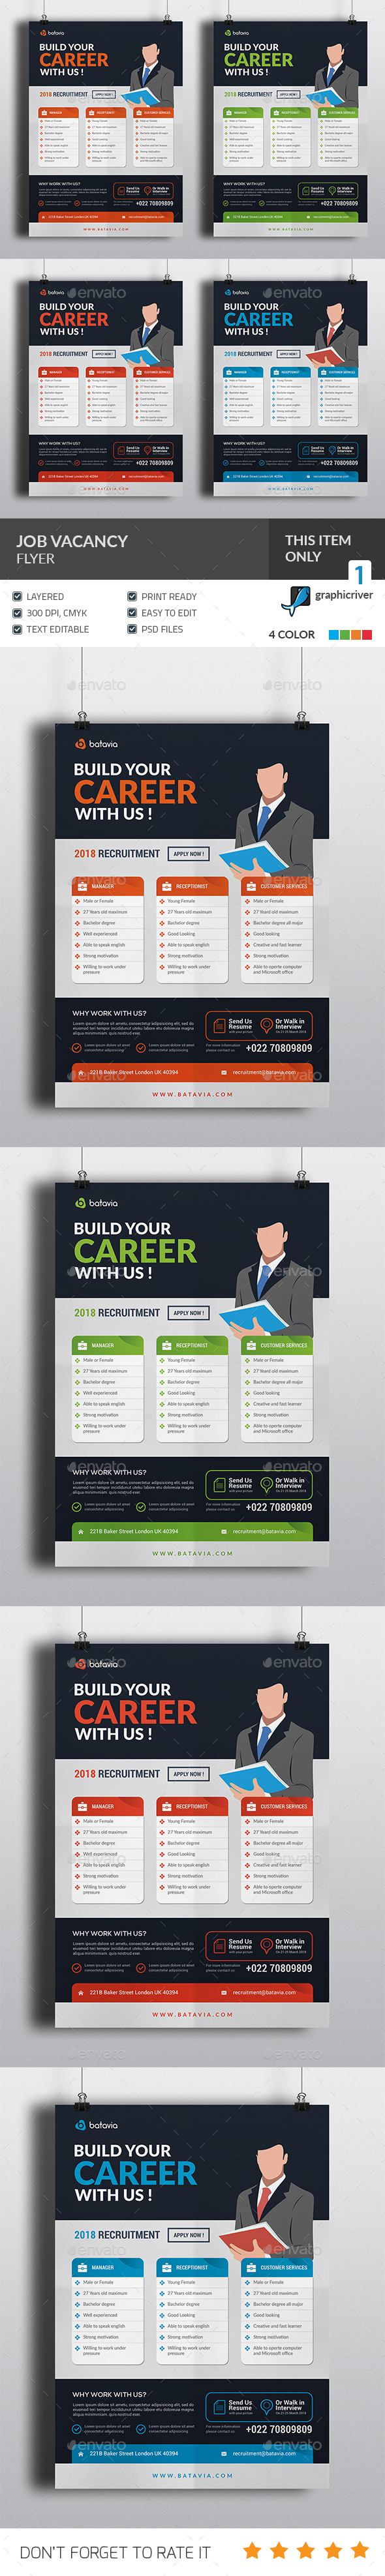 GraphicRiver Job Vacancy Flyer 21183633